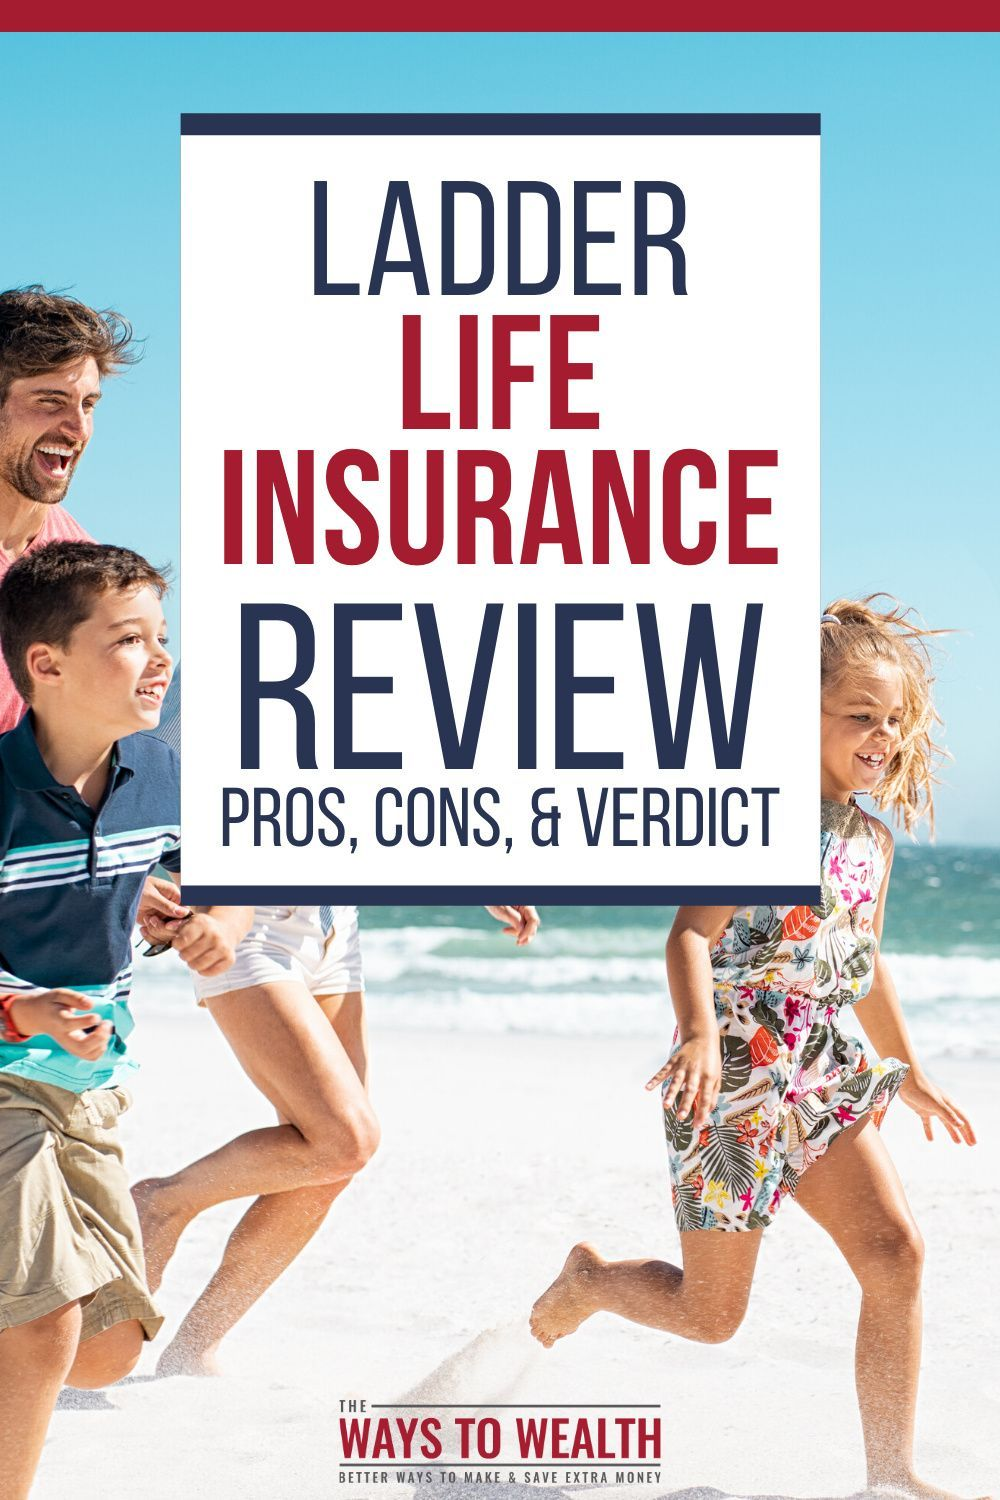 Ladder life insurance review in 2020 personal insurance